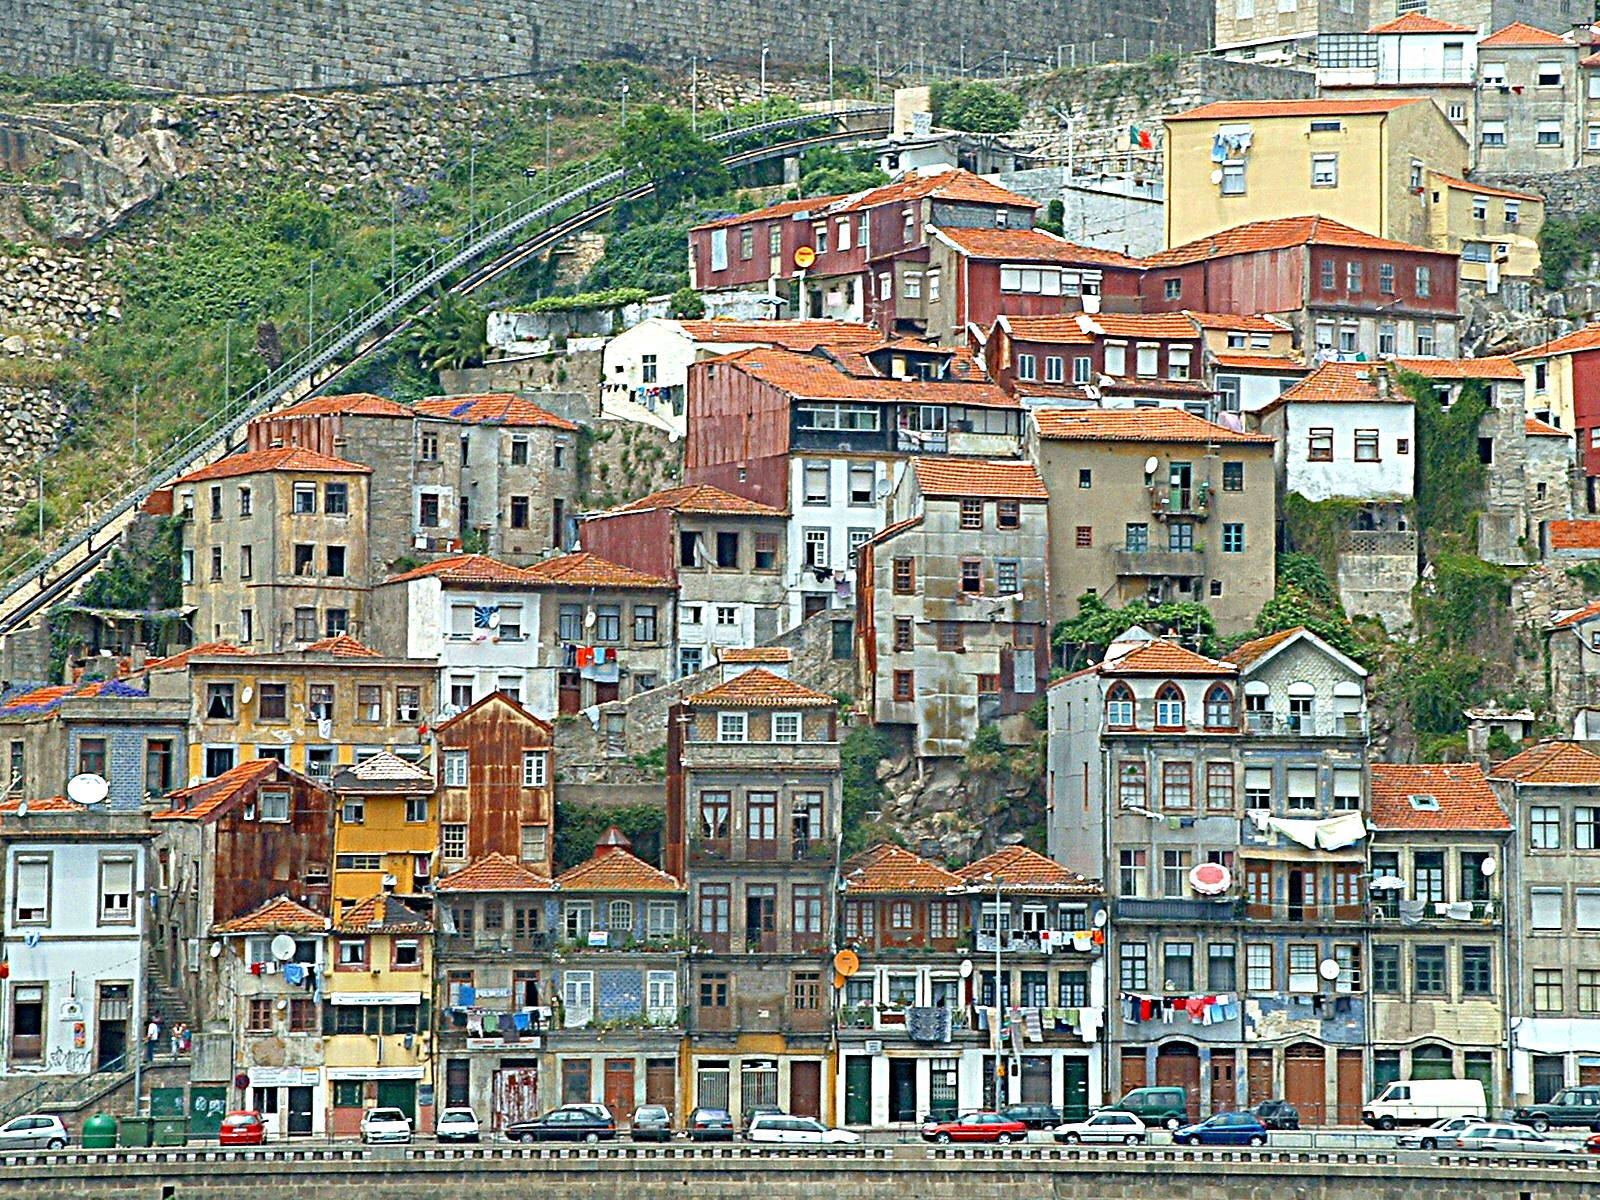 Holiday in Portugal, Porto, Portugal, City houses